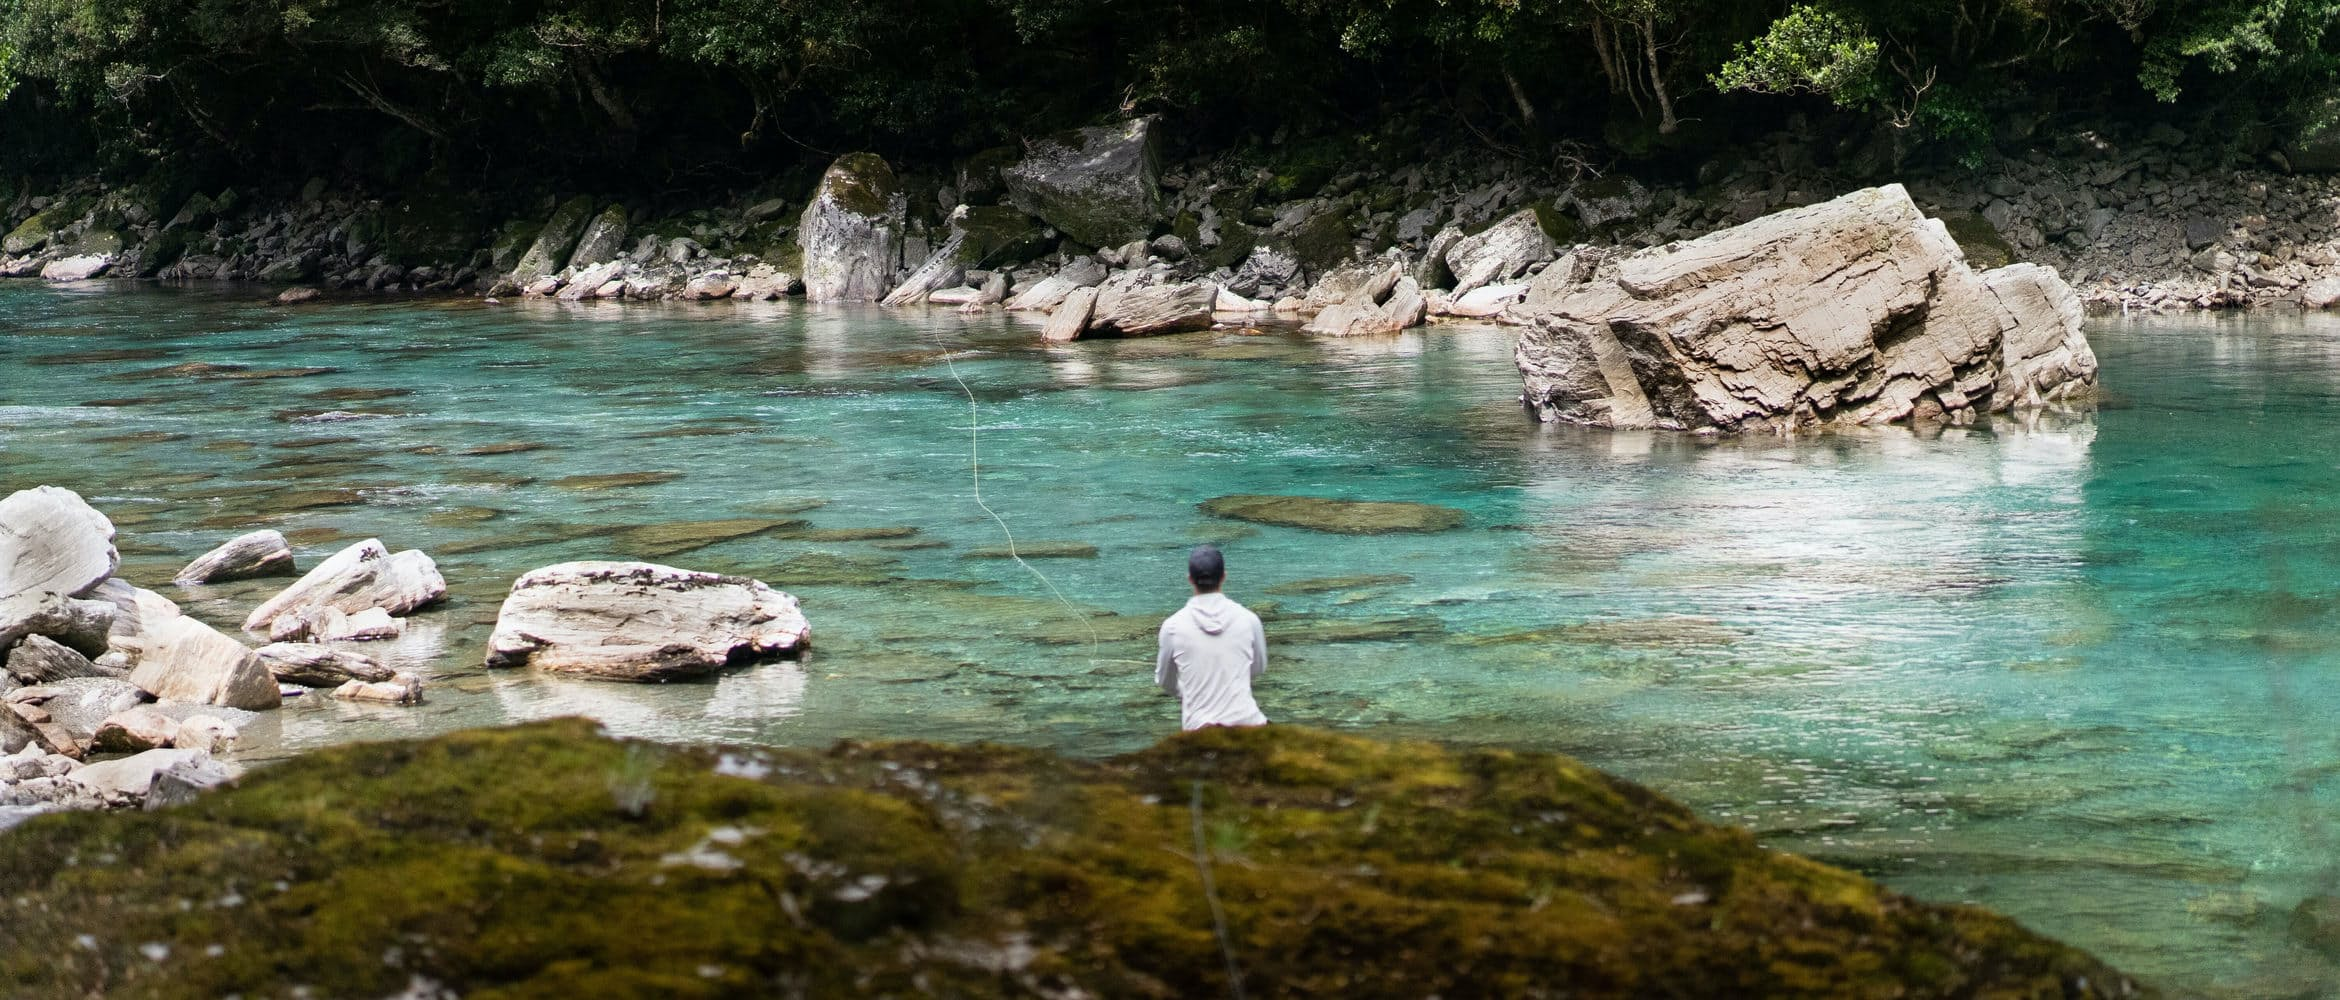 Featured 2x mike idell fly fishing in new zealand .jpeg?ixlib=rails 2.1